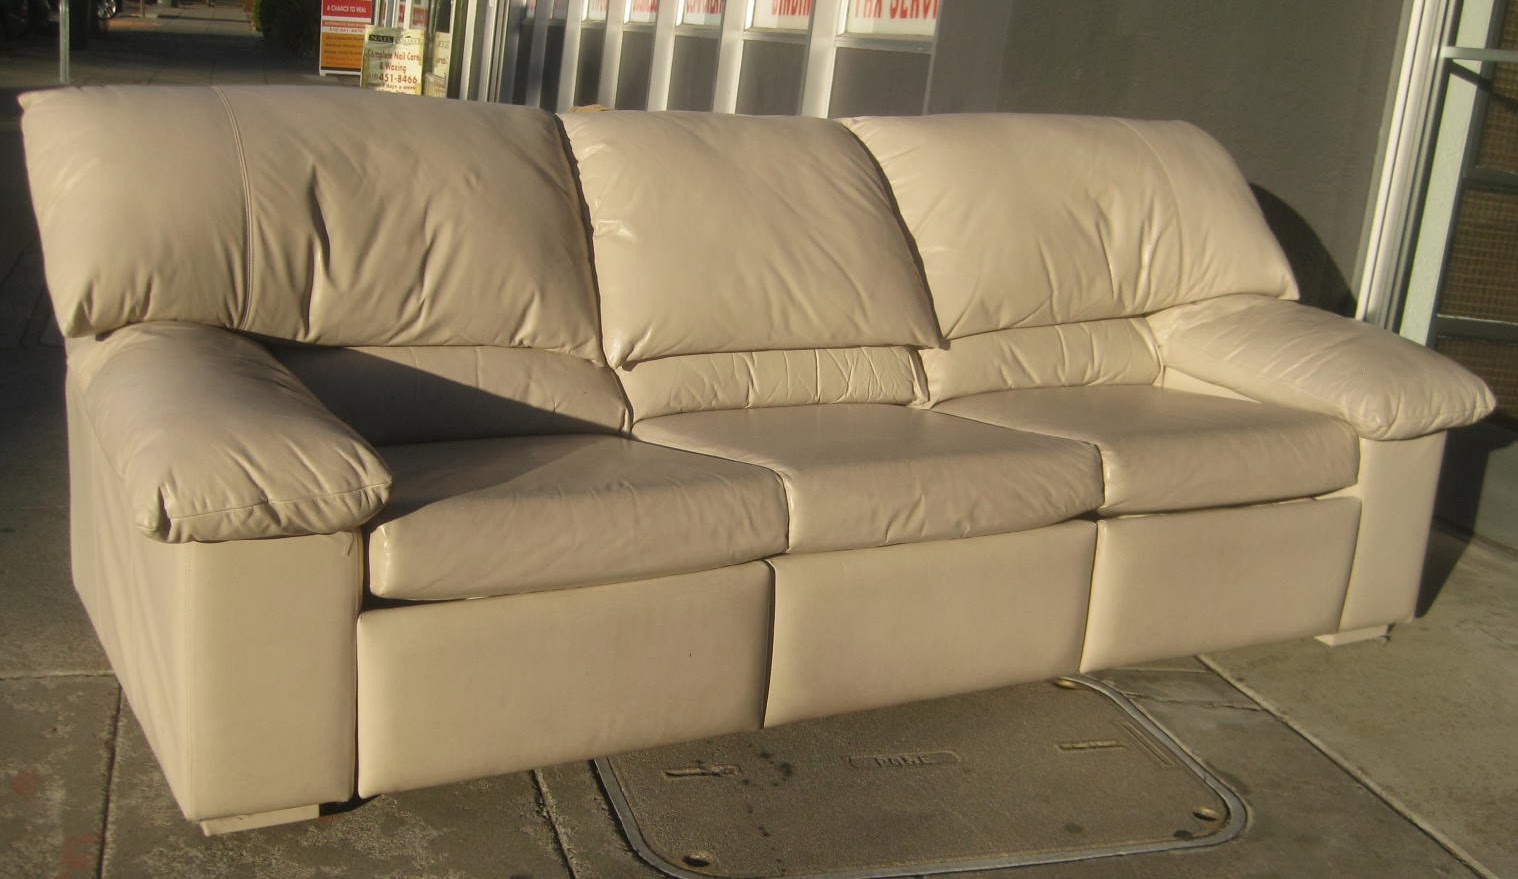 Uhuru furniture collectibles sold leather sofa w for Sectional sofa with reclining ends